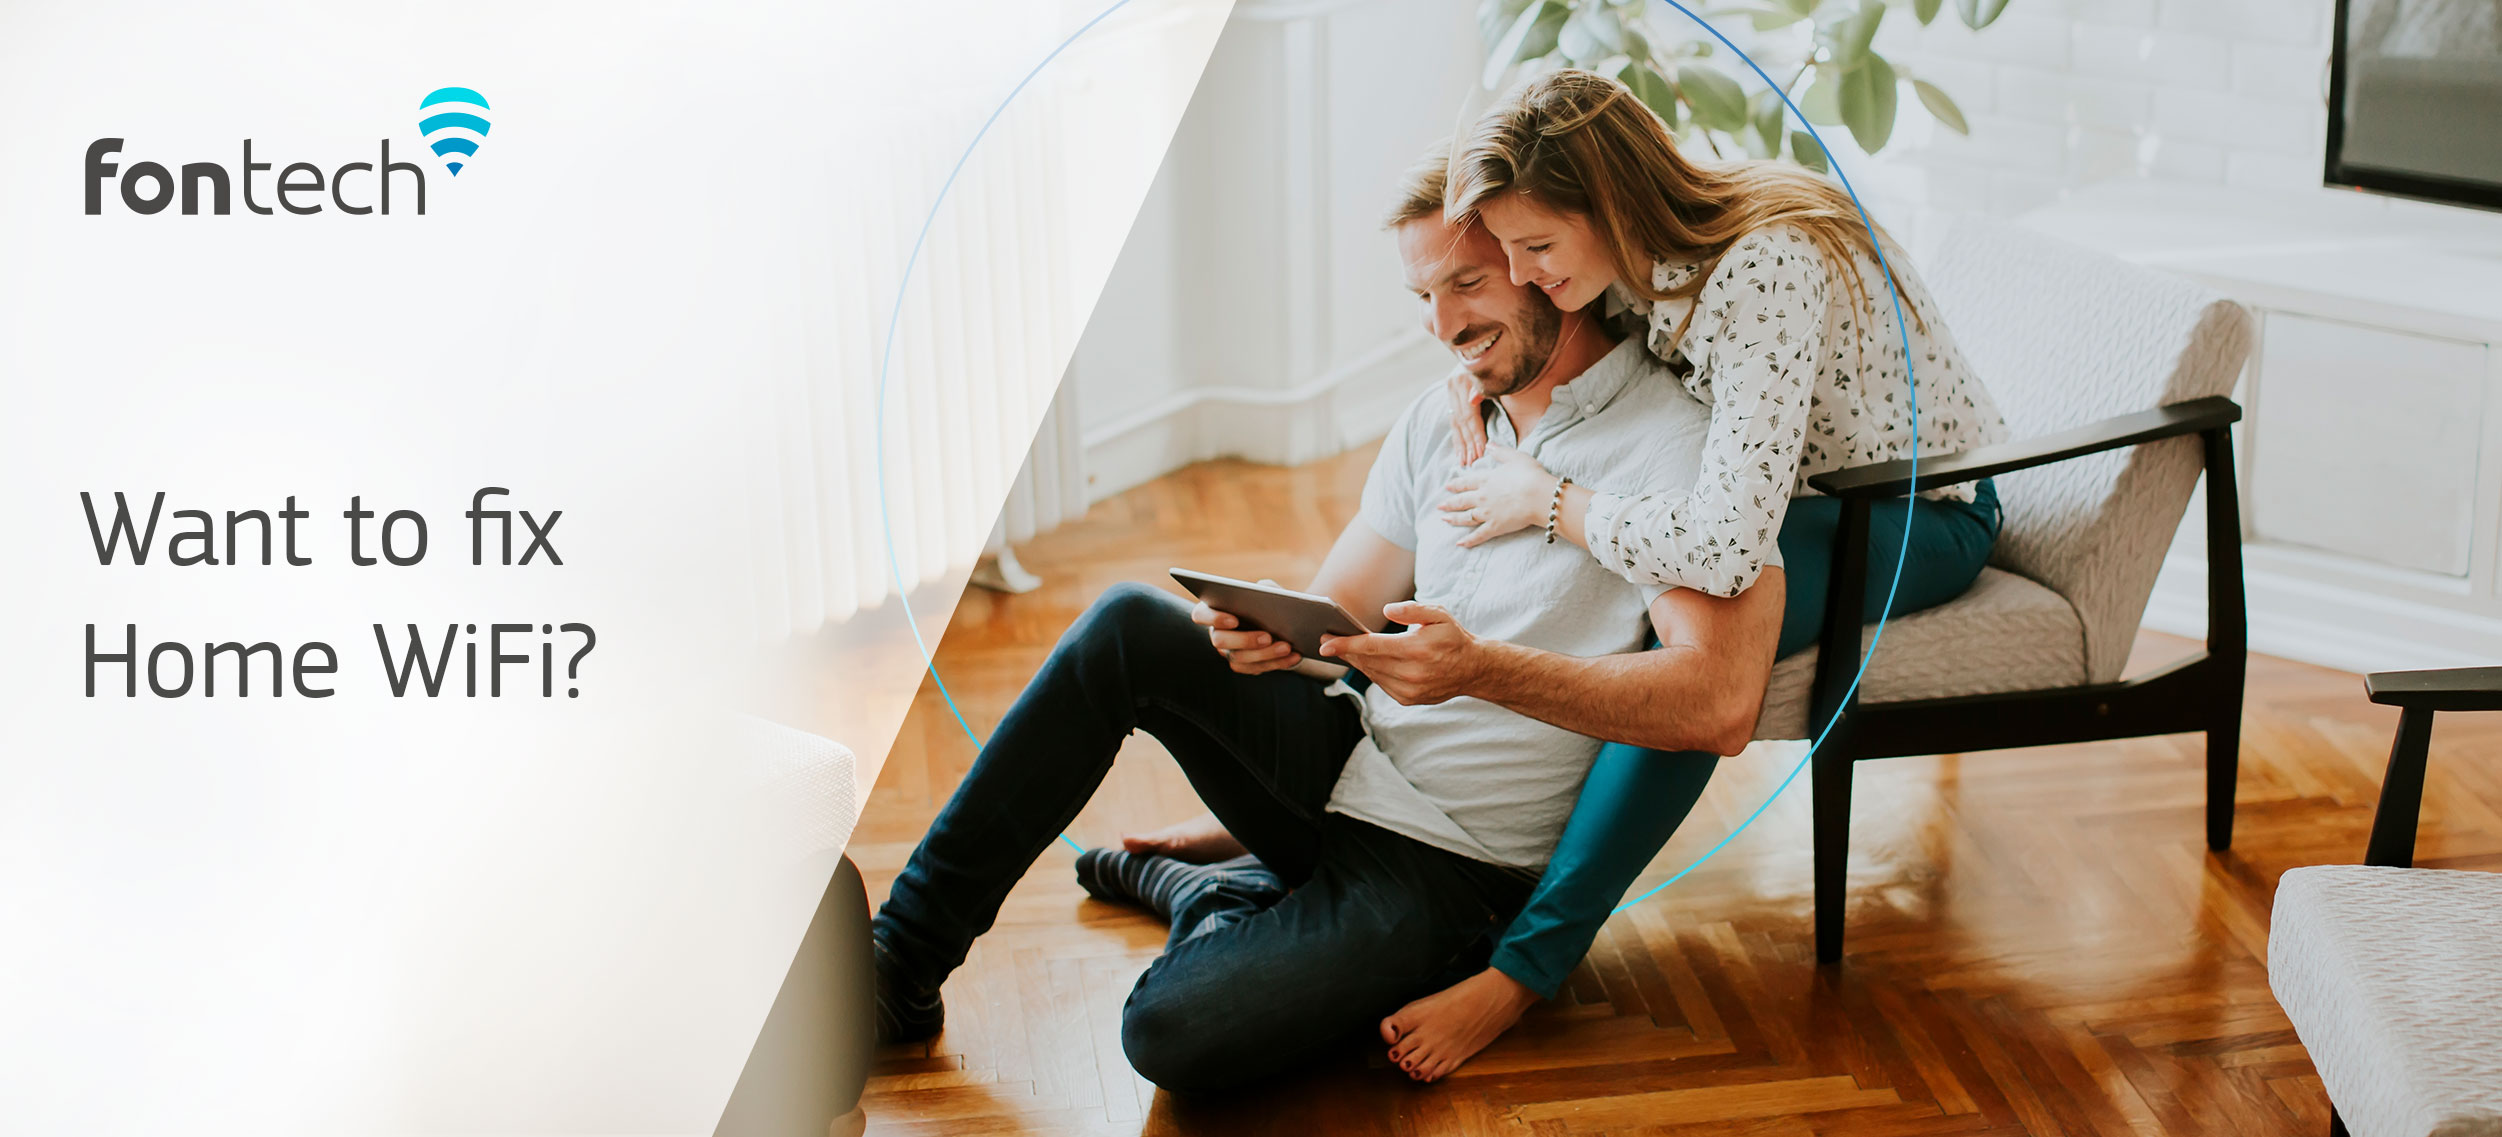 Couple enjoying an exceptional WiFi experience at home thanks to Fontech's Home WiFi Solution